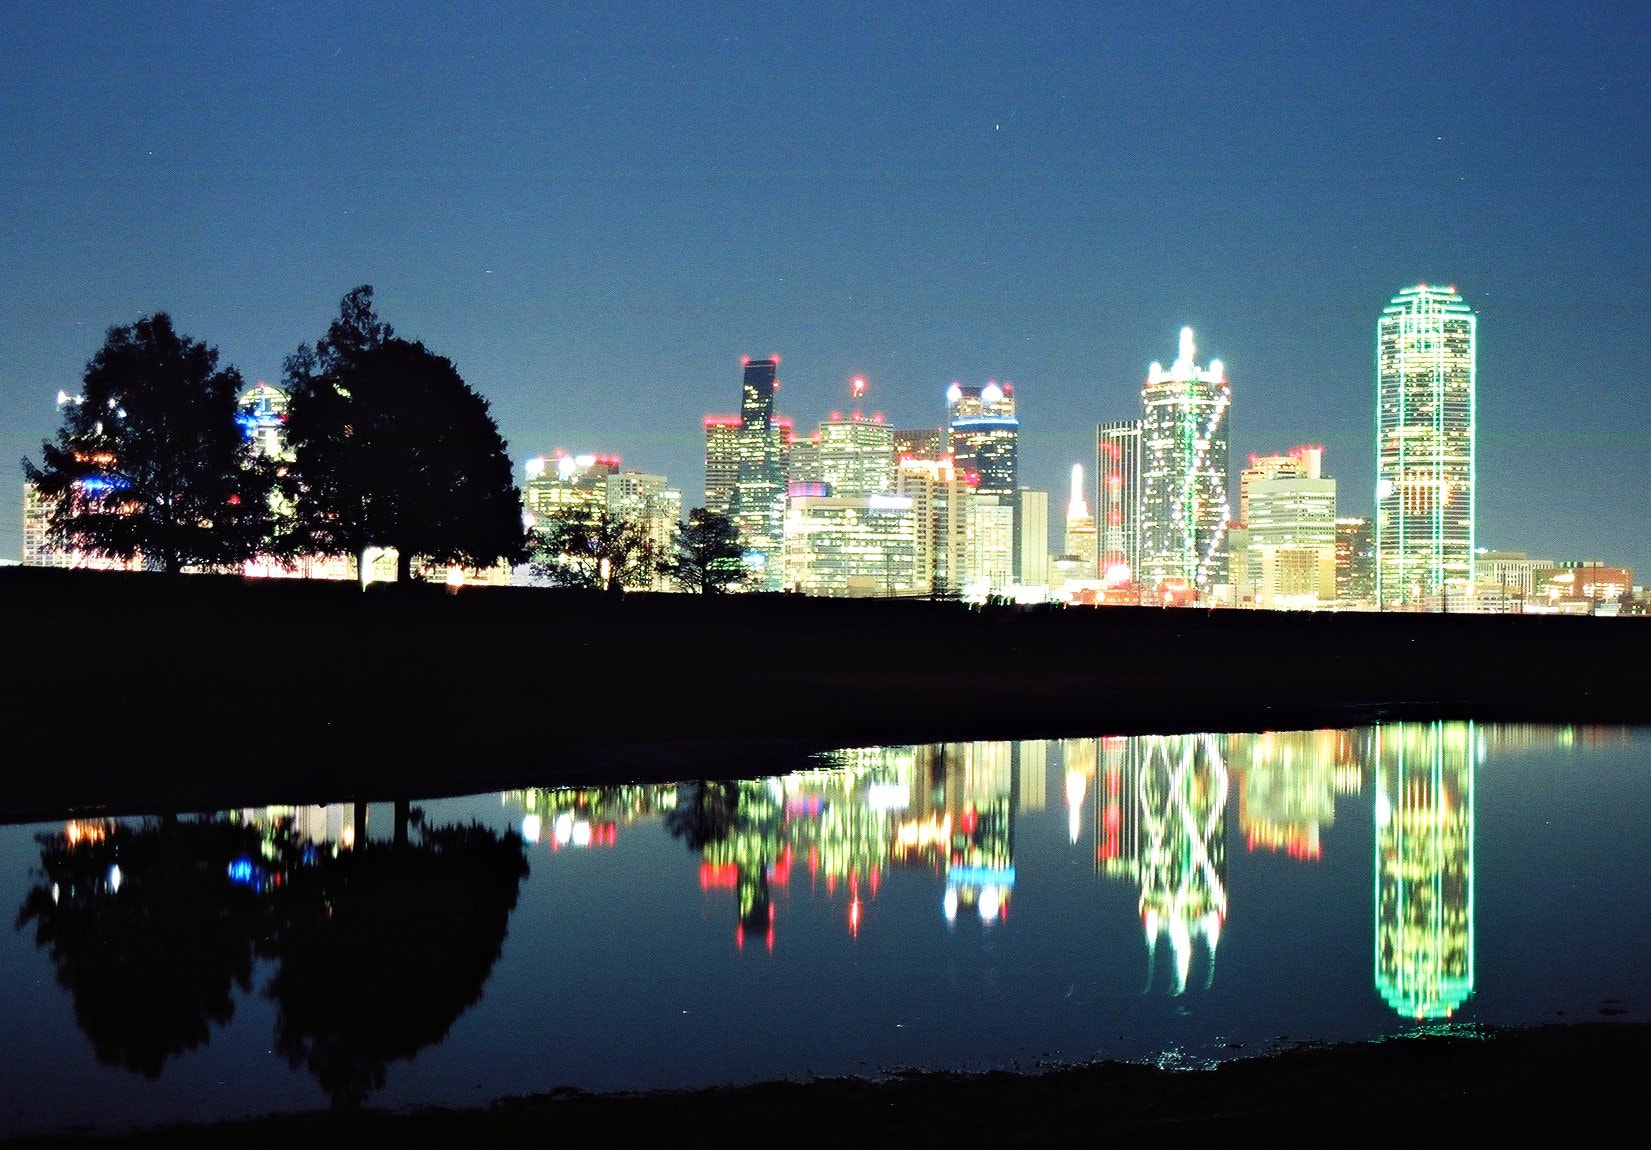 Photograph Dallas at Night on Film by Kevin Kretschmar on 500px